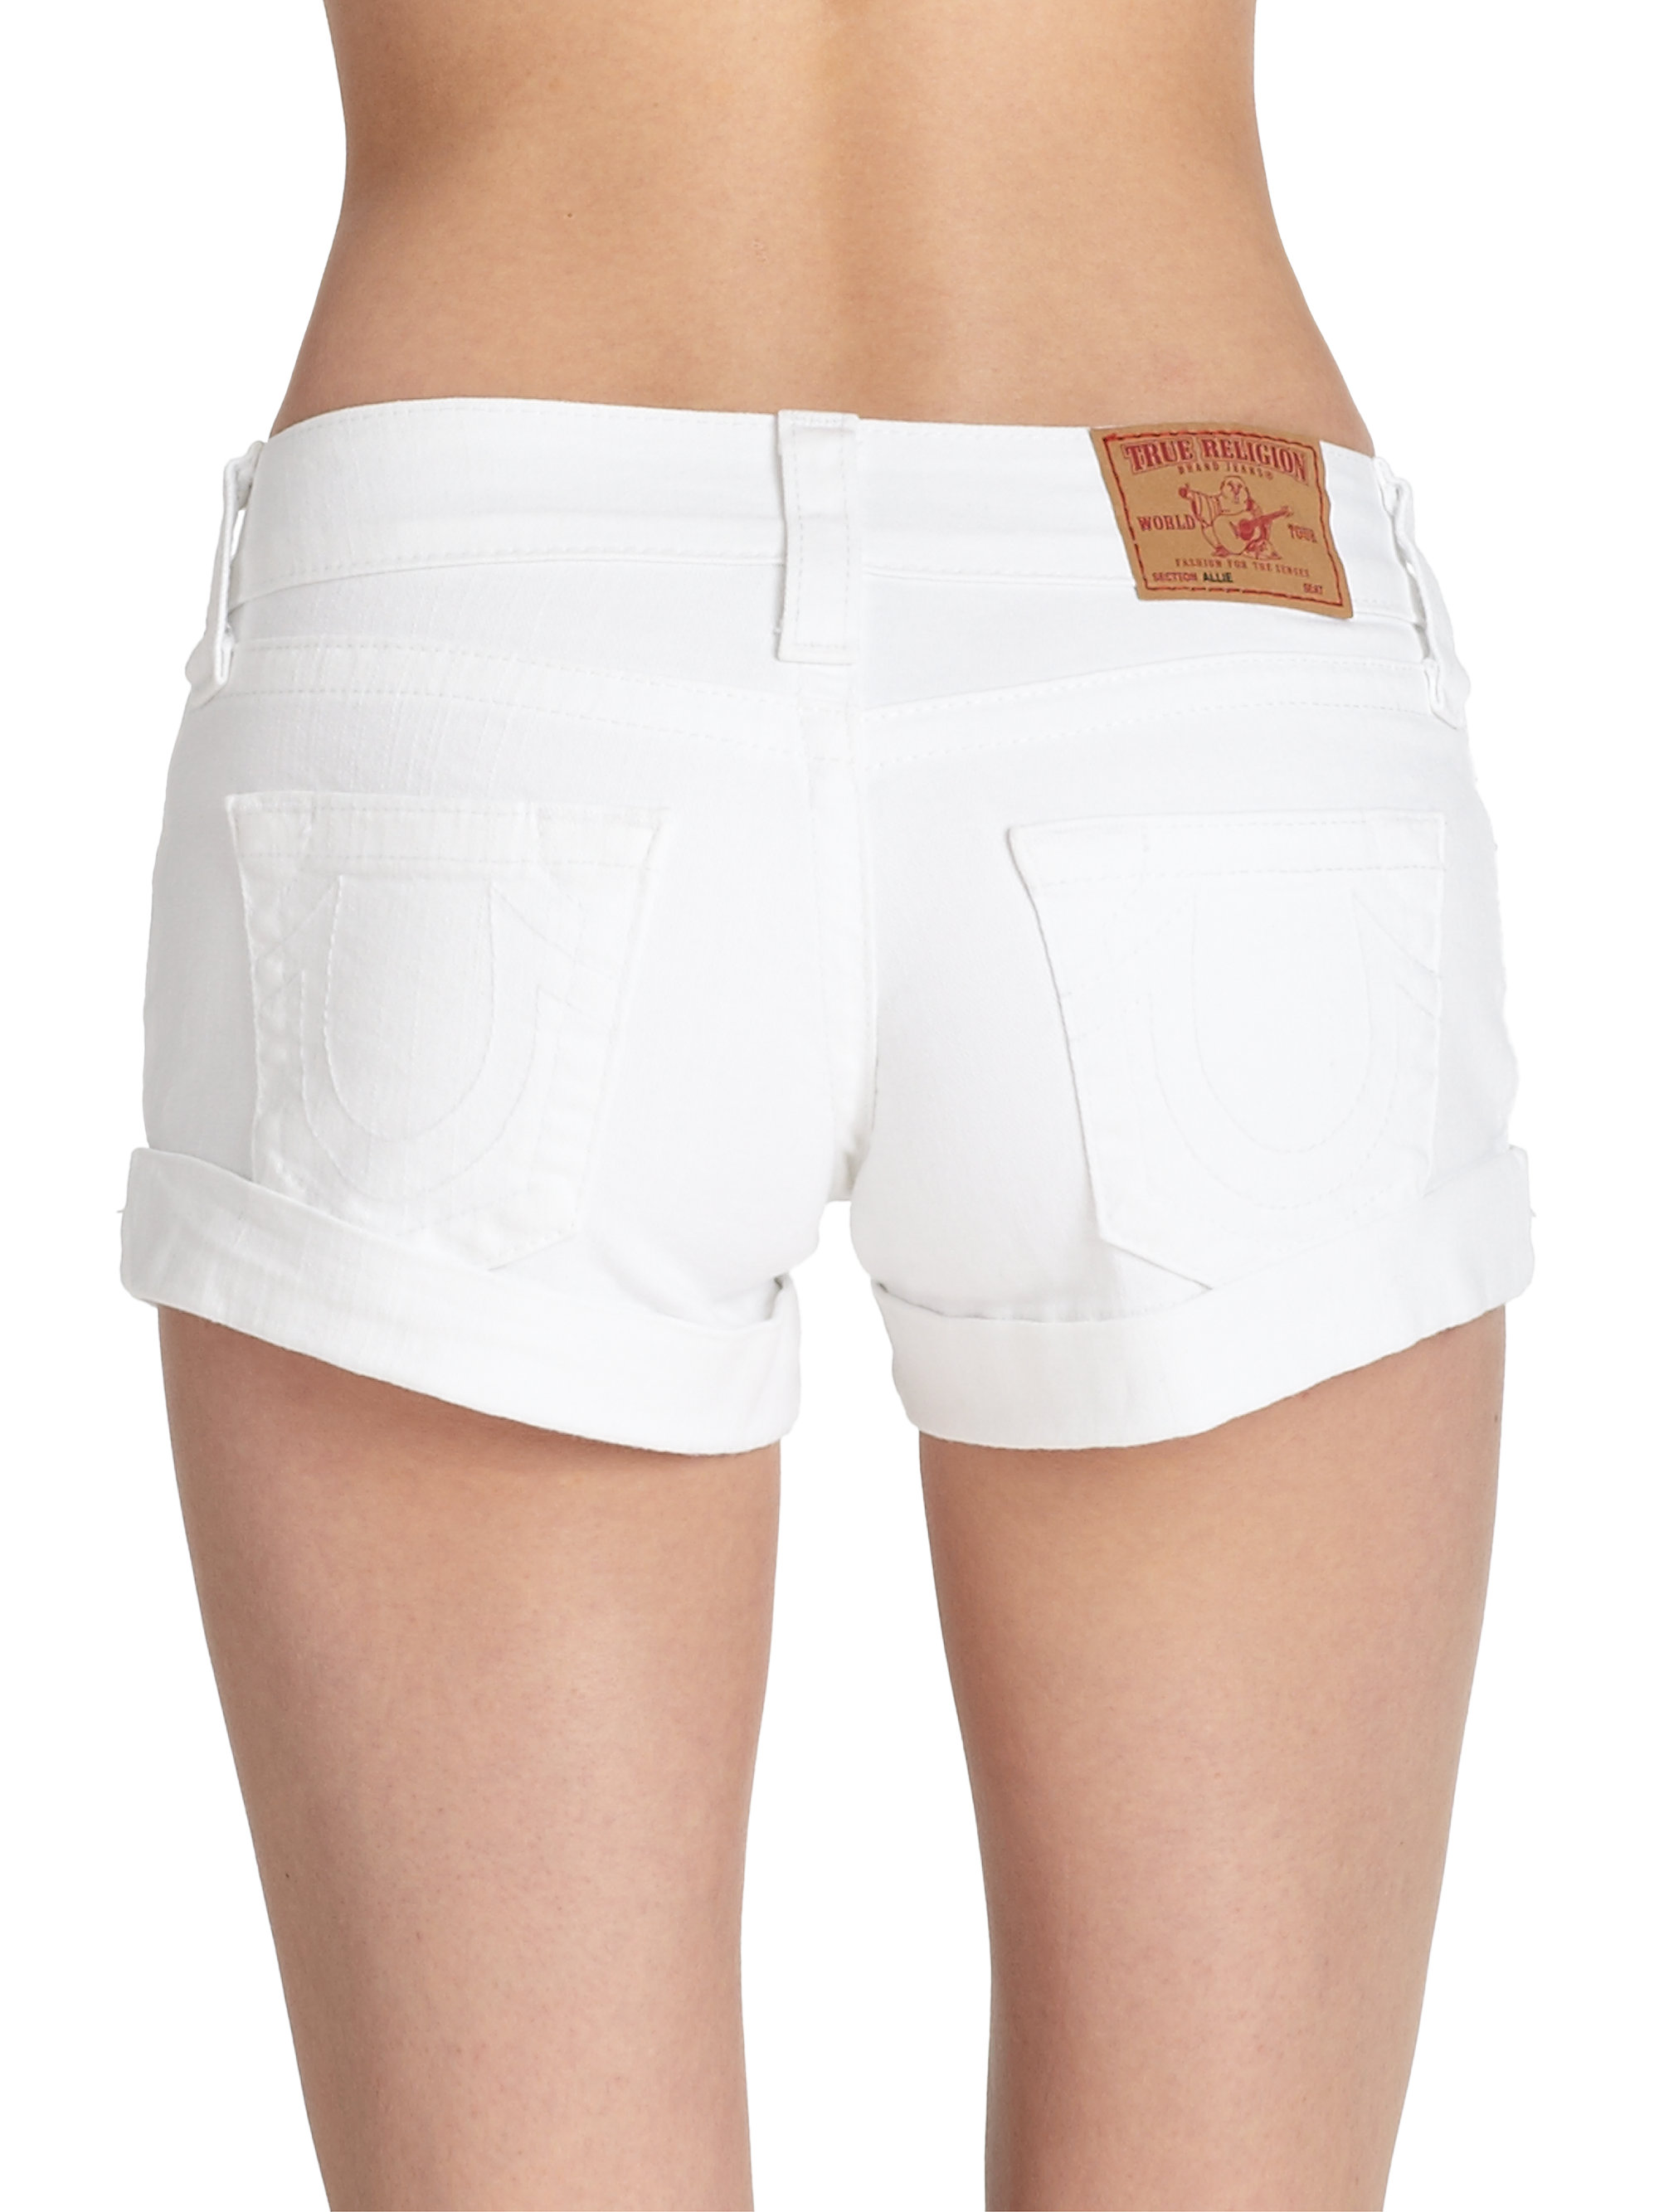 True religion Allie Cuffed Stretch Denim Shorts in White | Lyst